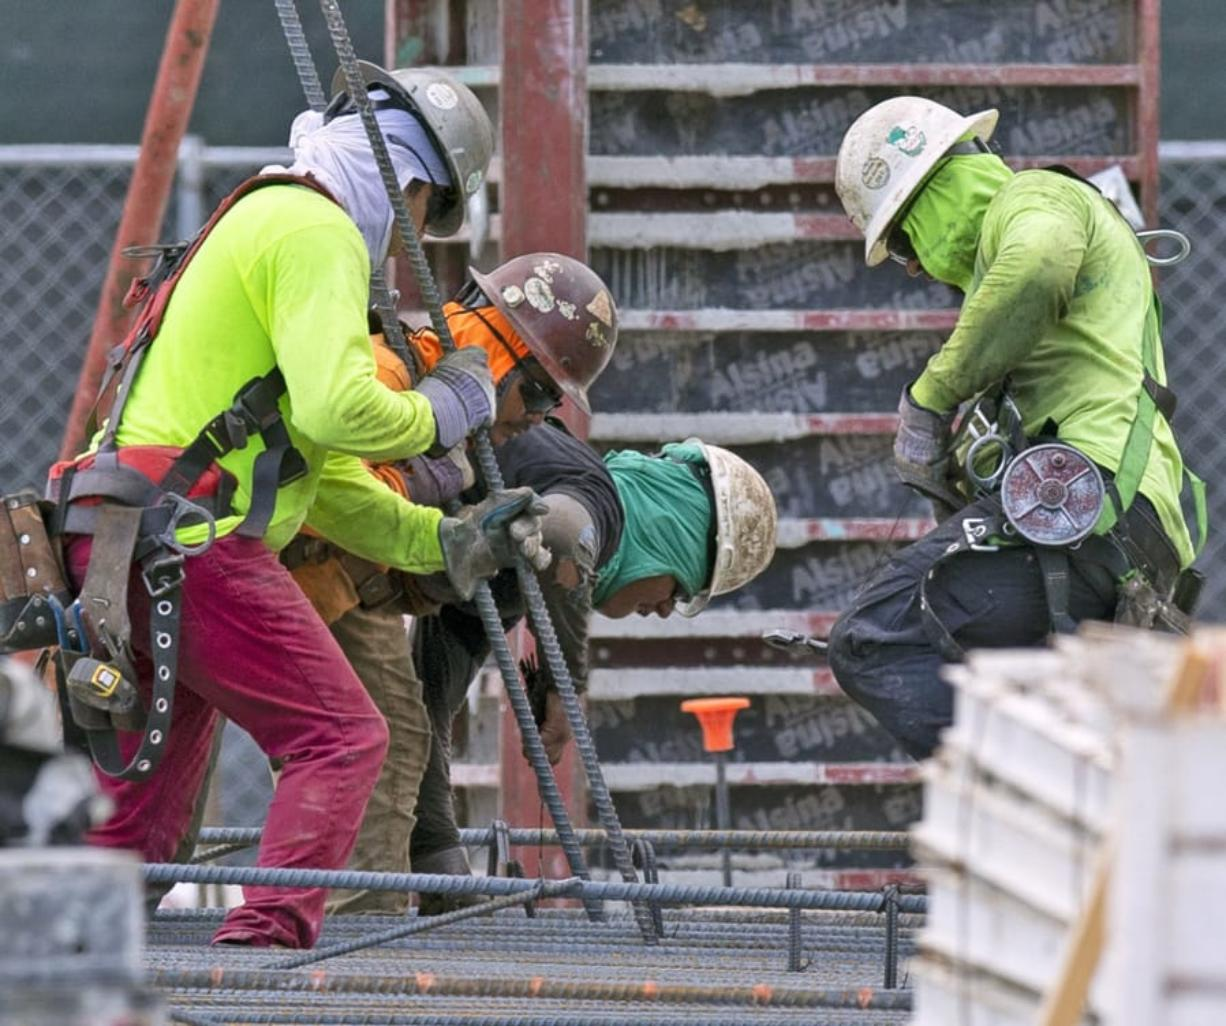 Construction workers labor at the construction site off South Dixie Highway and SW 37th Avenue in Coral Gables, Fla., on March 31, 2020.